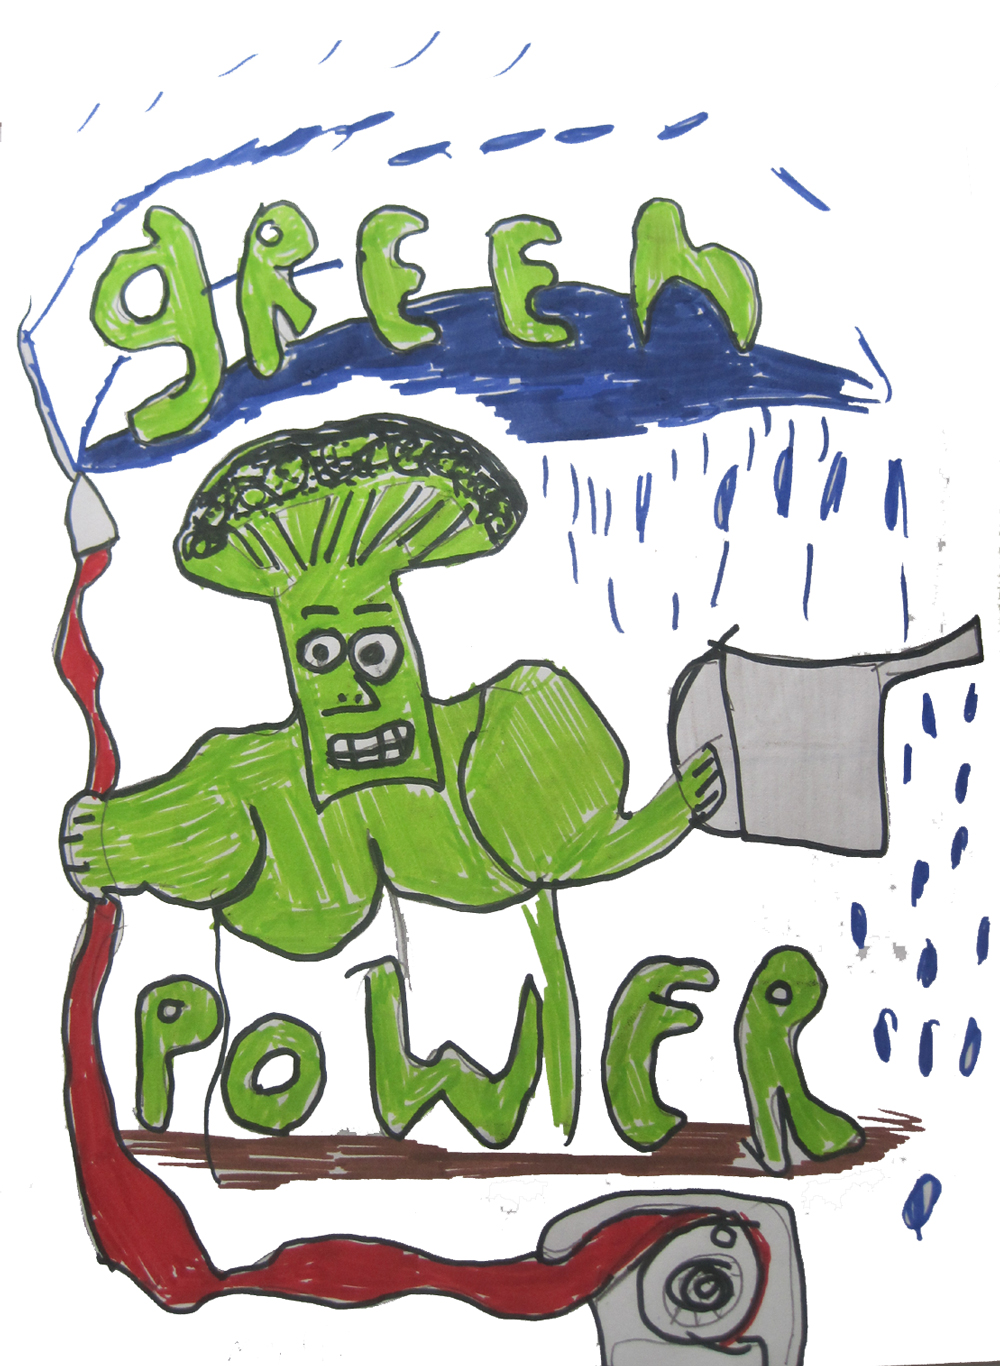 Green power, broccoli man!